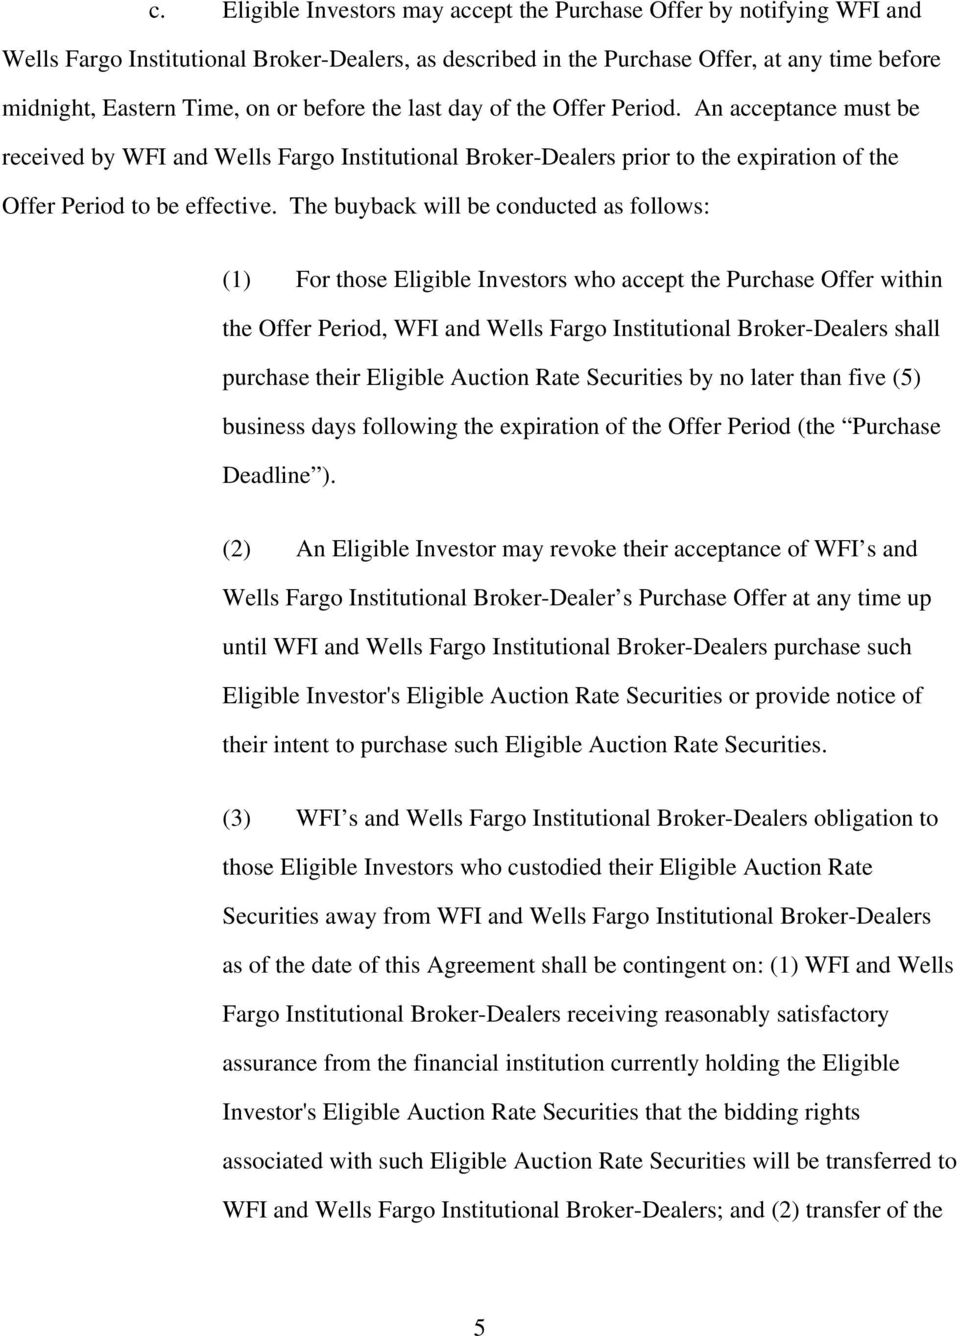 The buyback will be conducted as follows: (1) For those Eligible Investors who accept the Purchase Offer within the Offer Period, WFI and Wells Fargo Institutional Broker-Dealers shall purchase their